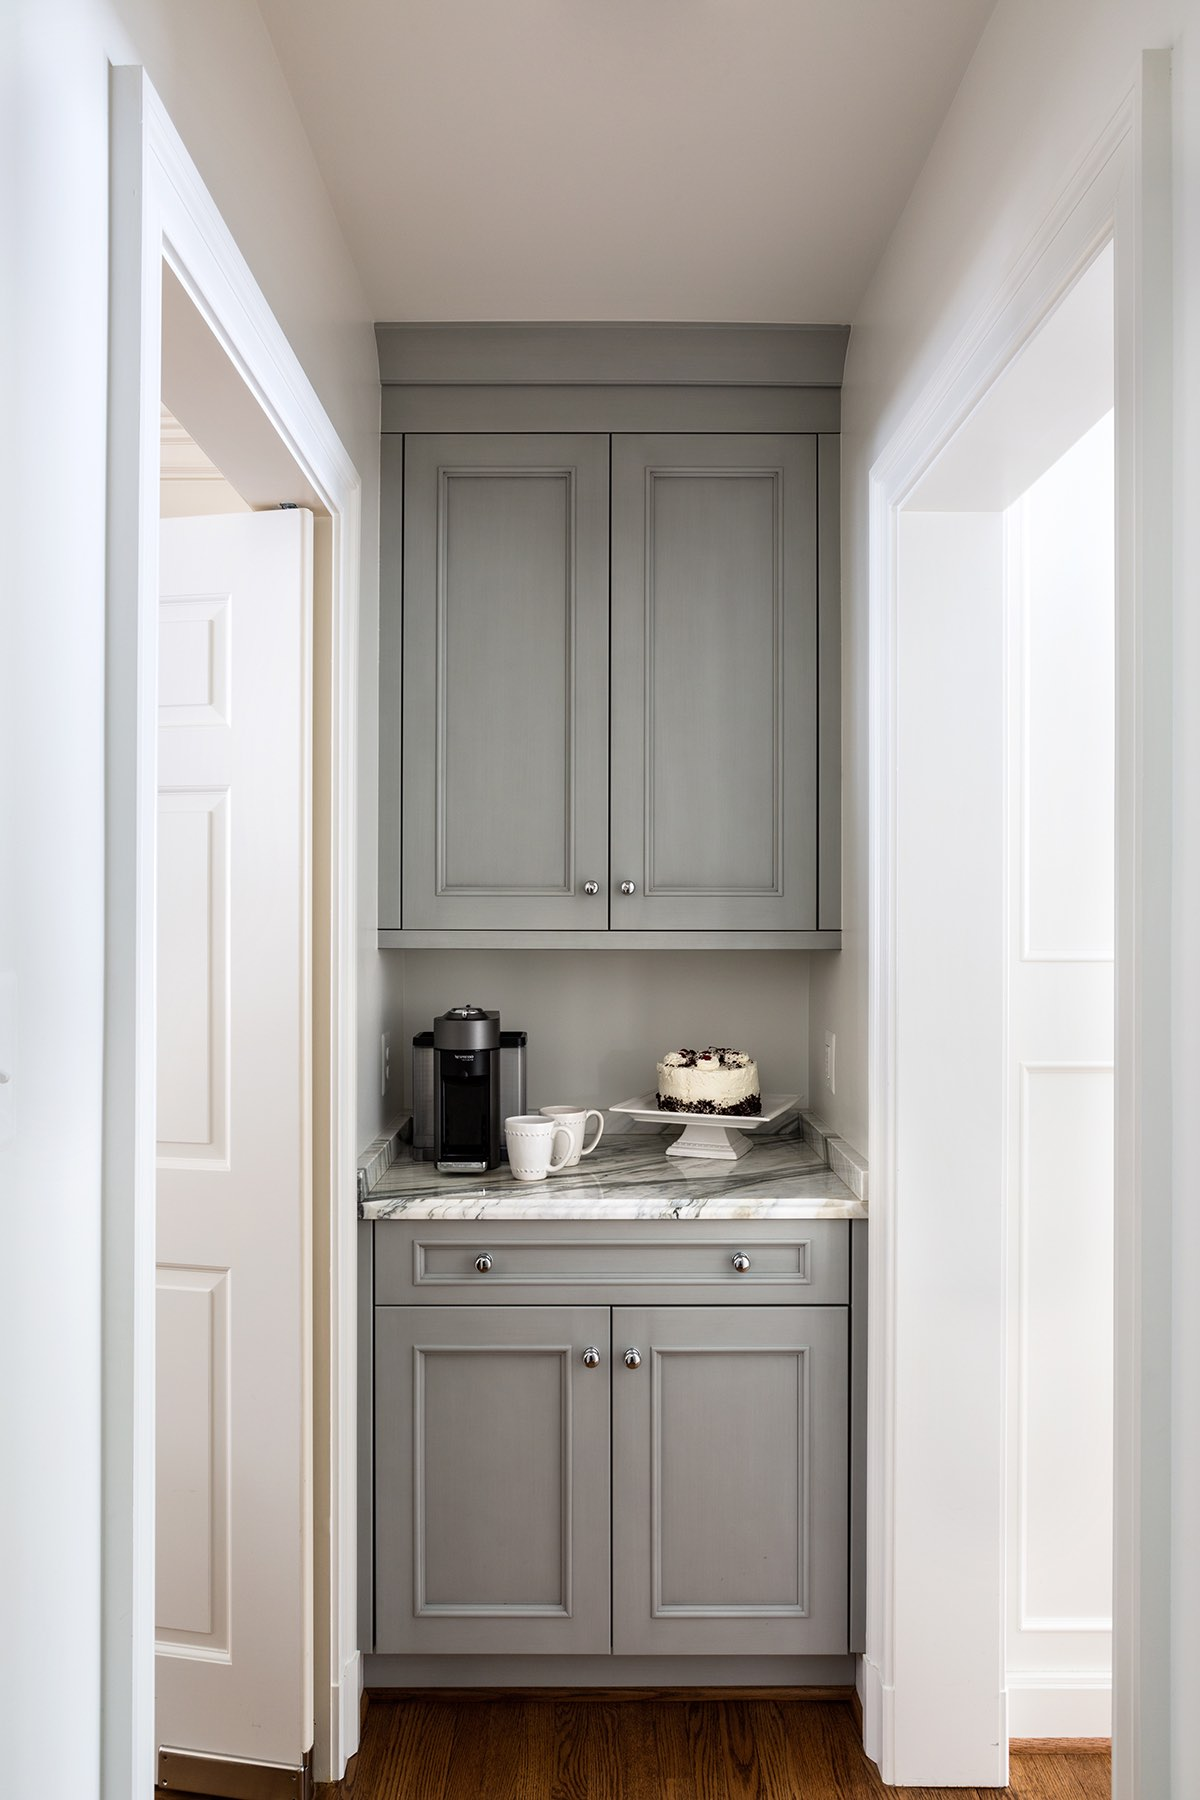 Custom-built butler's pantry off home kitchen with gray cabinetry